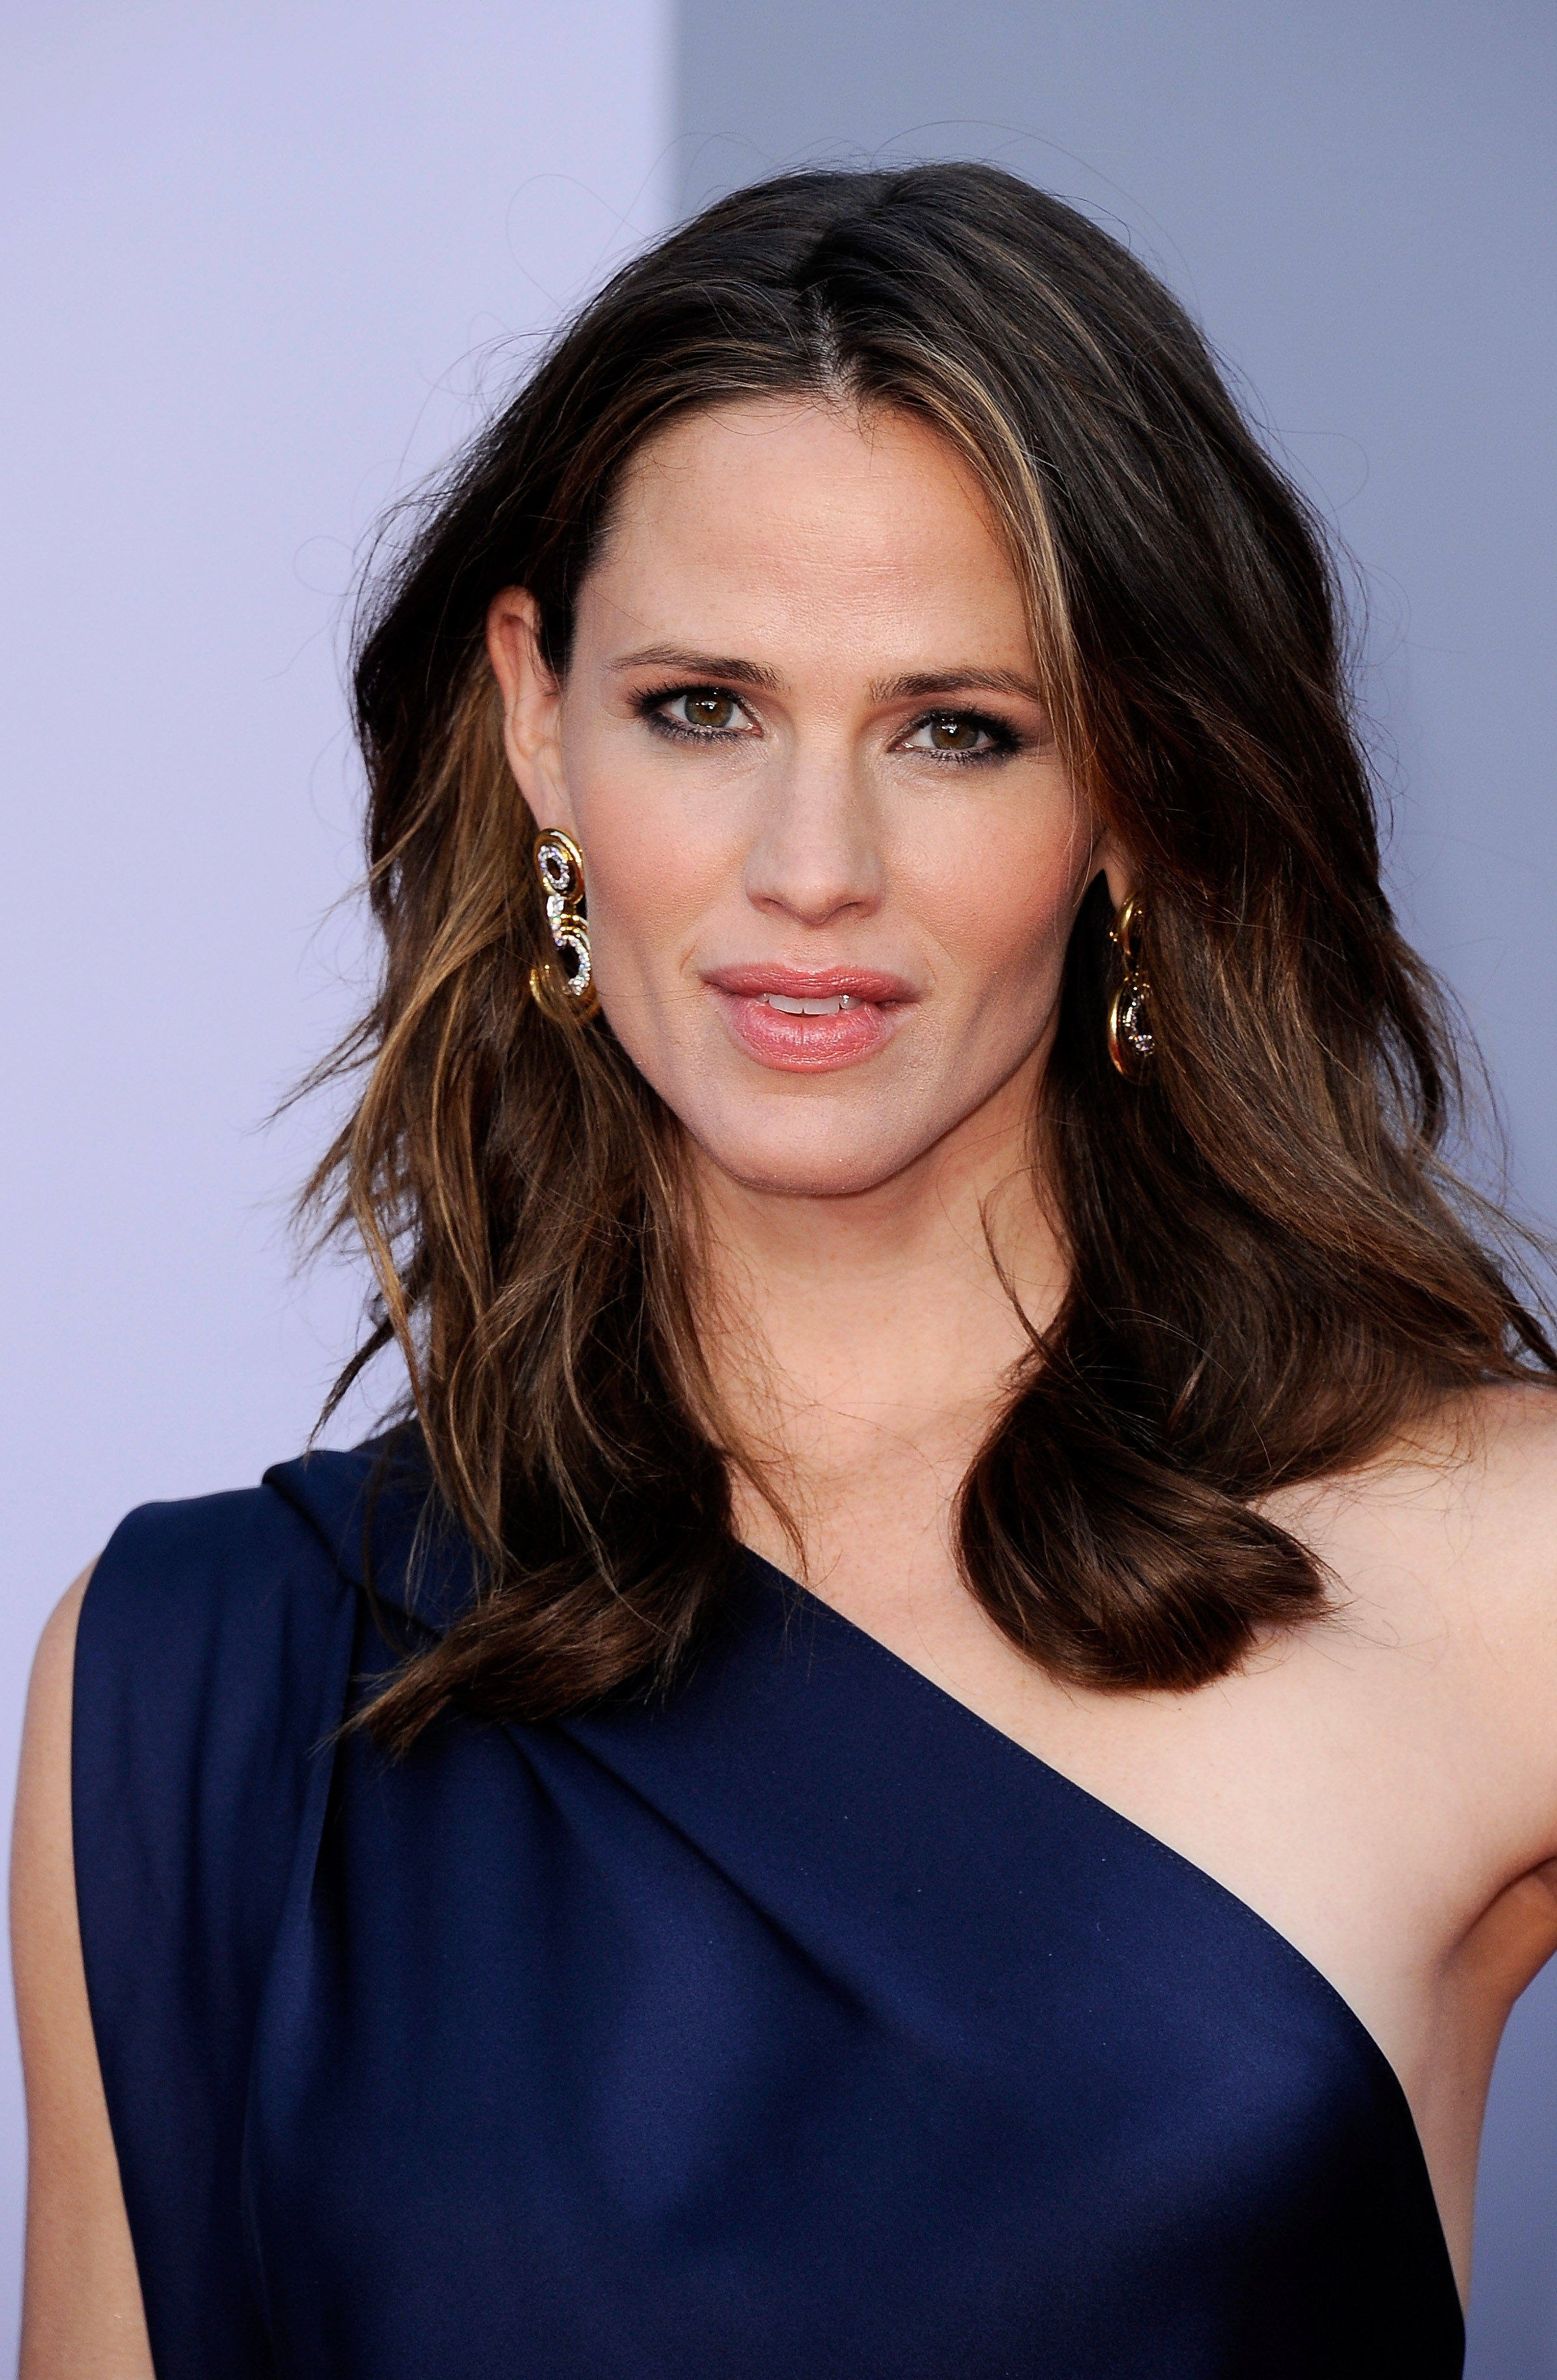 Jennifer Garner in blue at the BAFTA Brits to Watch event in LA.